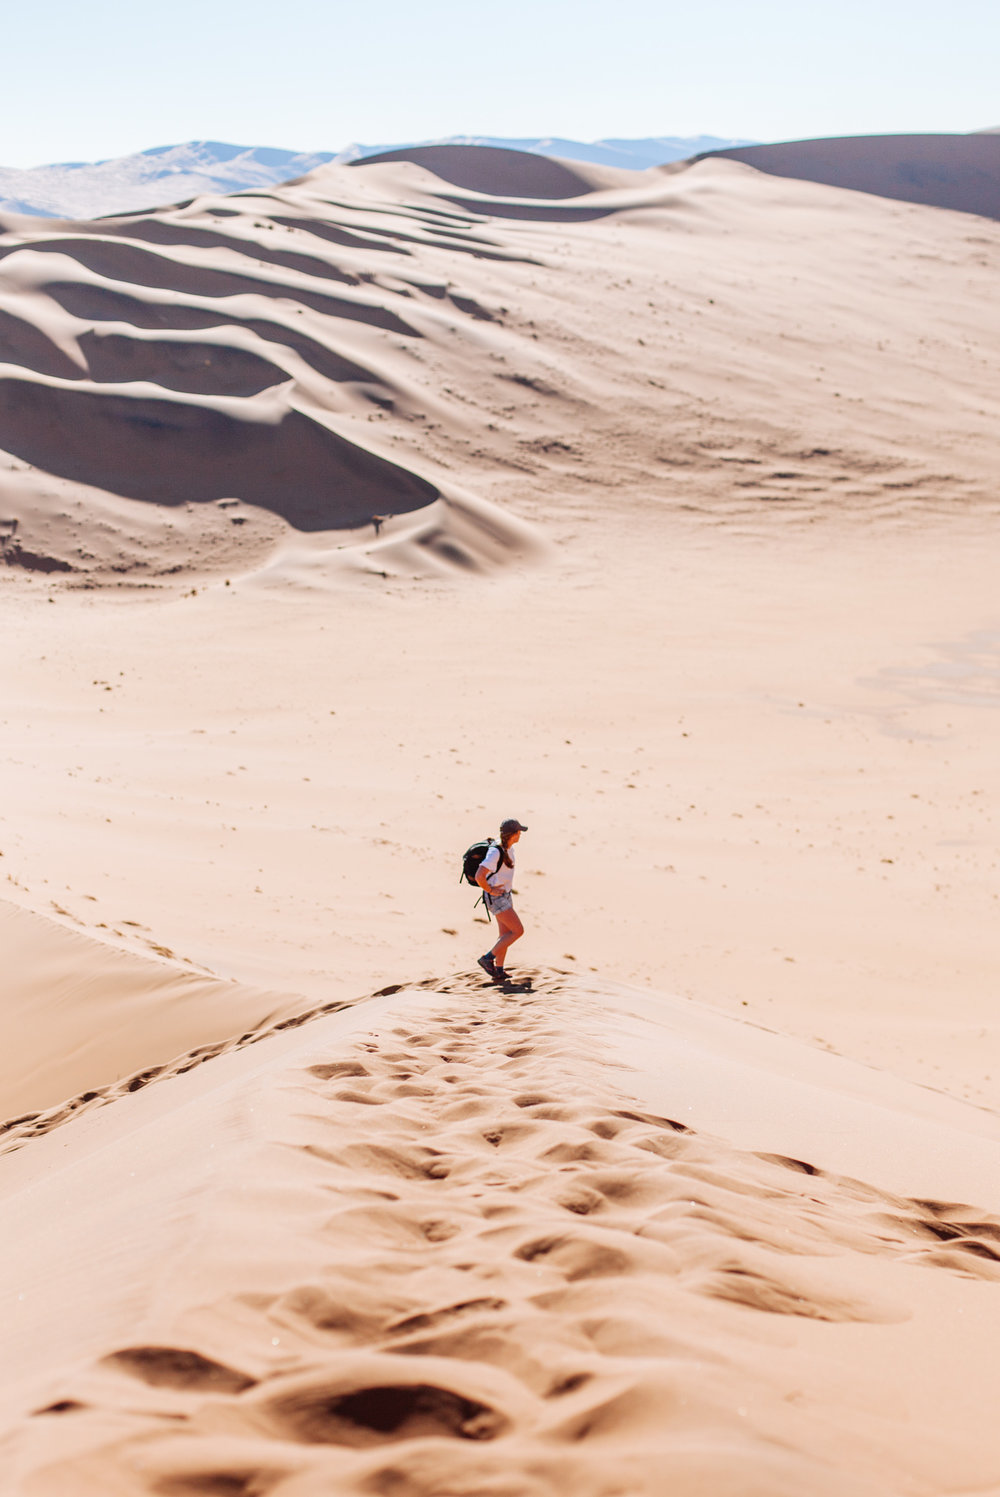 The Big Daddy ascent begins! At 325m high, Big Daddy is one of the world's tallest dunes.